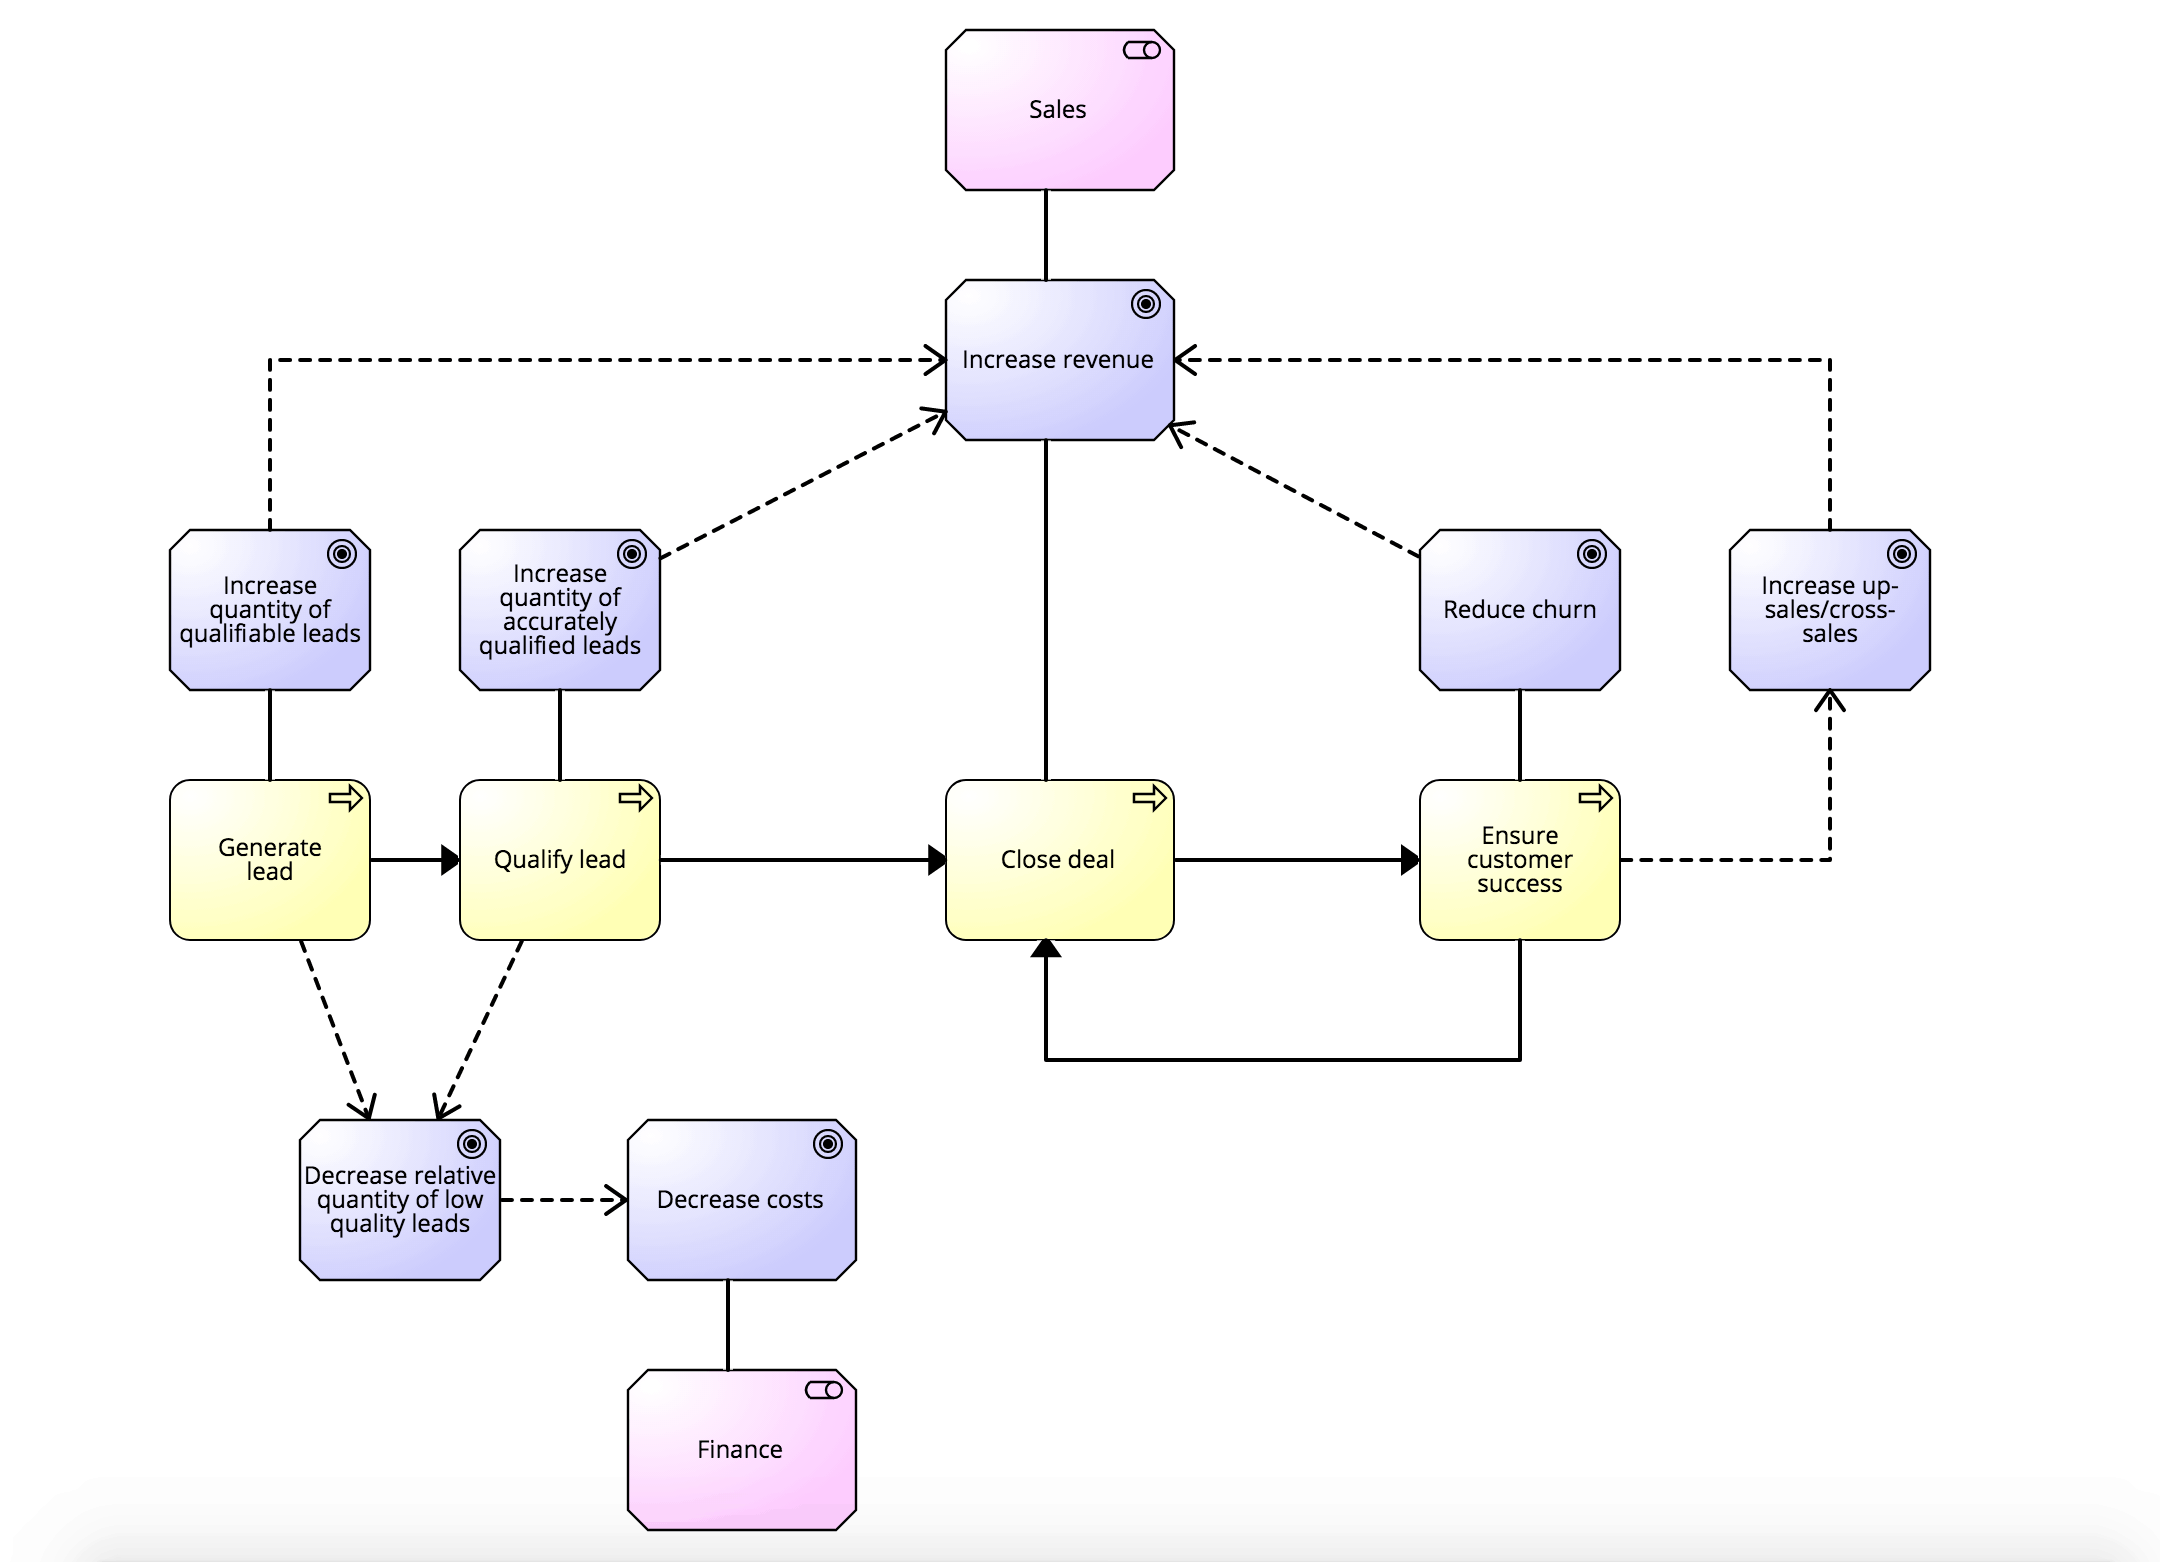 Adding sub-goals and connecting goals and process steps.